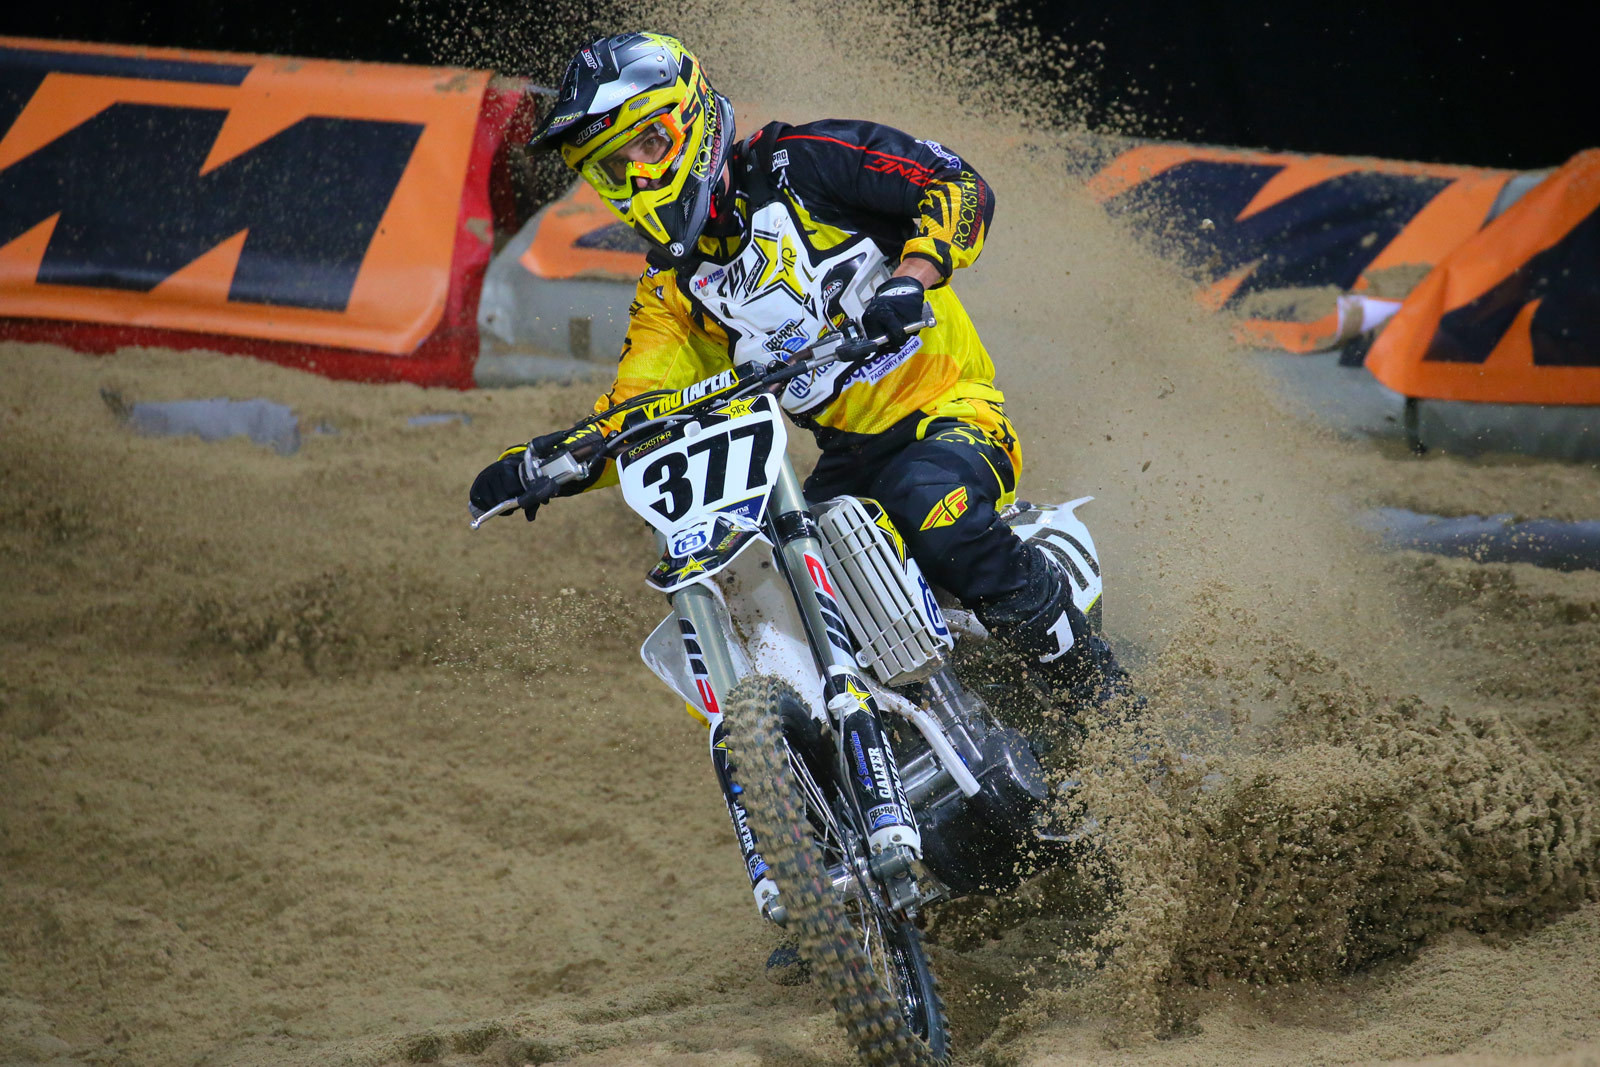 Christophe Pourcel - Vital MX Pit Bits: Paris-Lille Supercross - Motocross Pictures - Vital MX